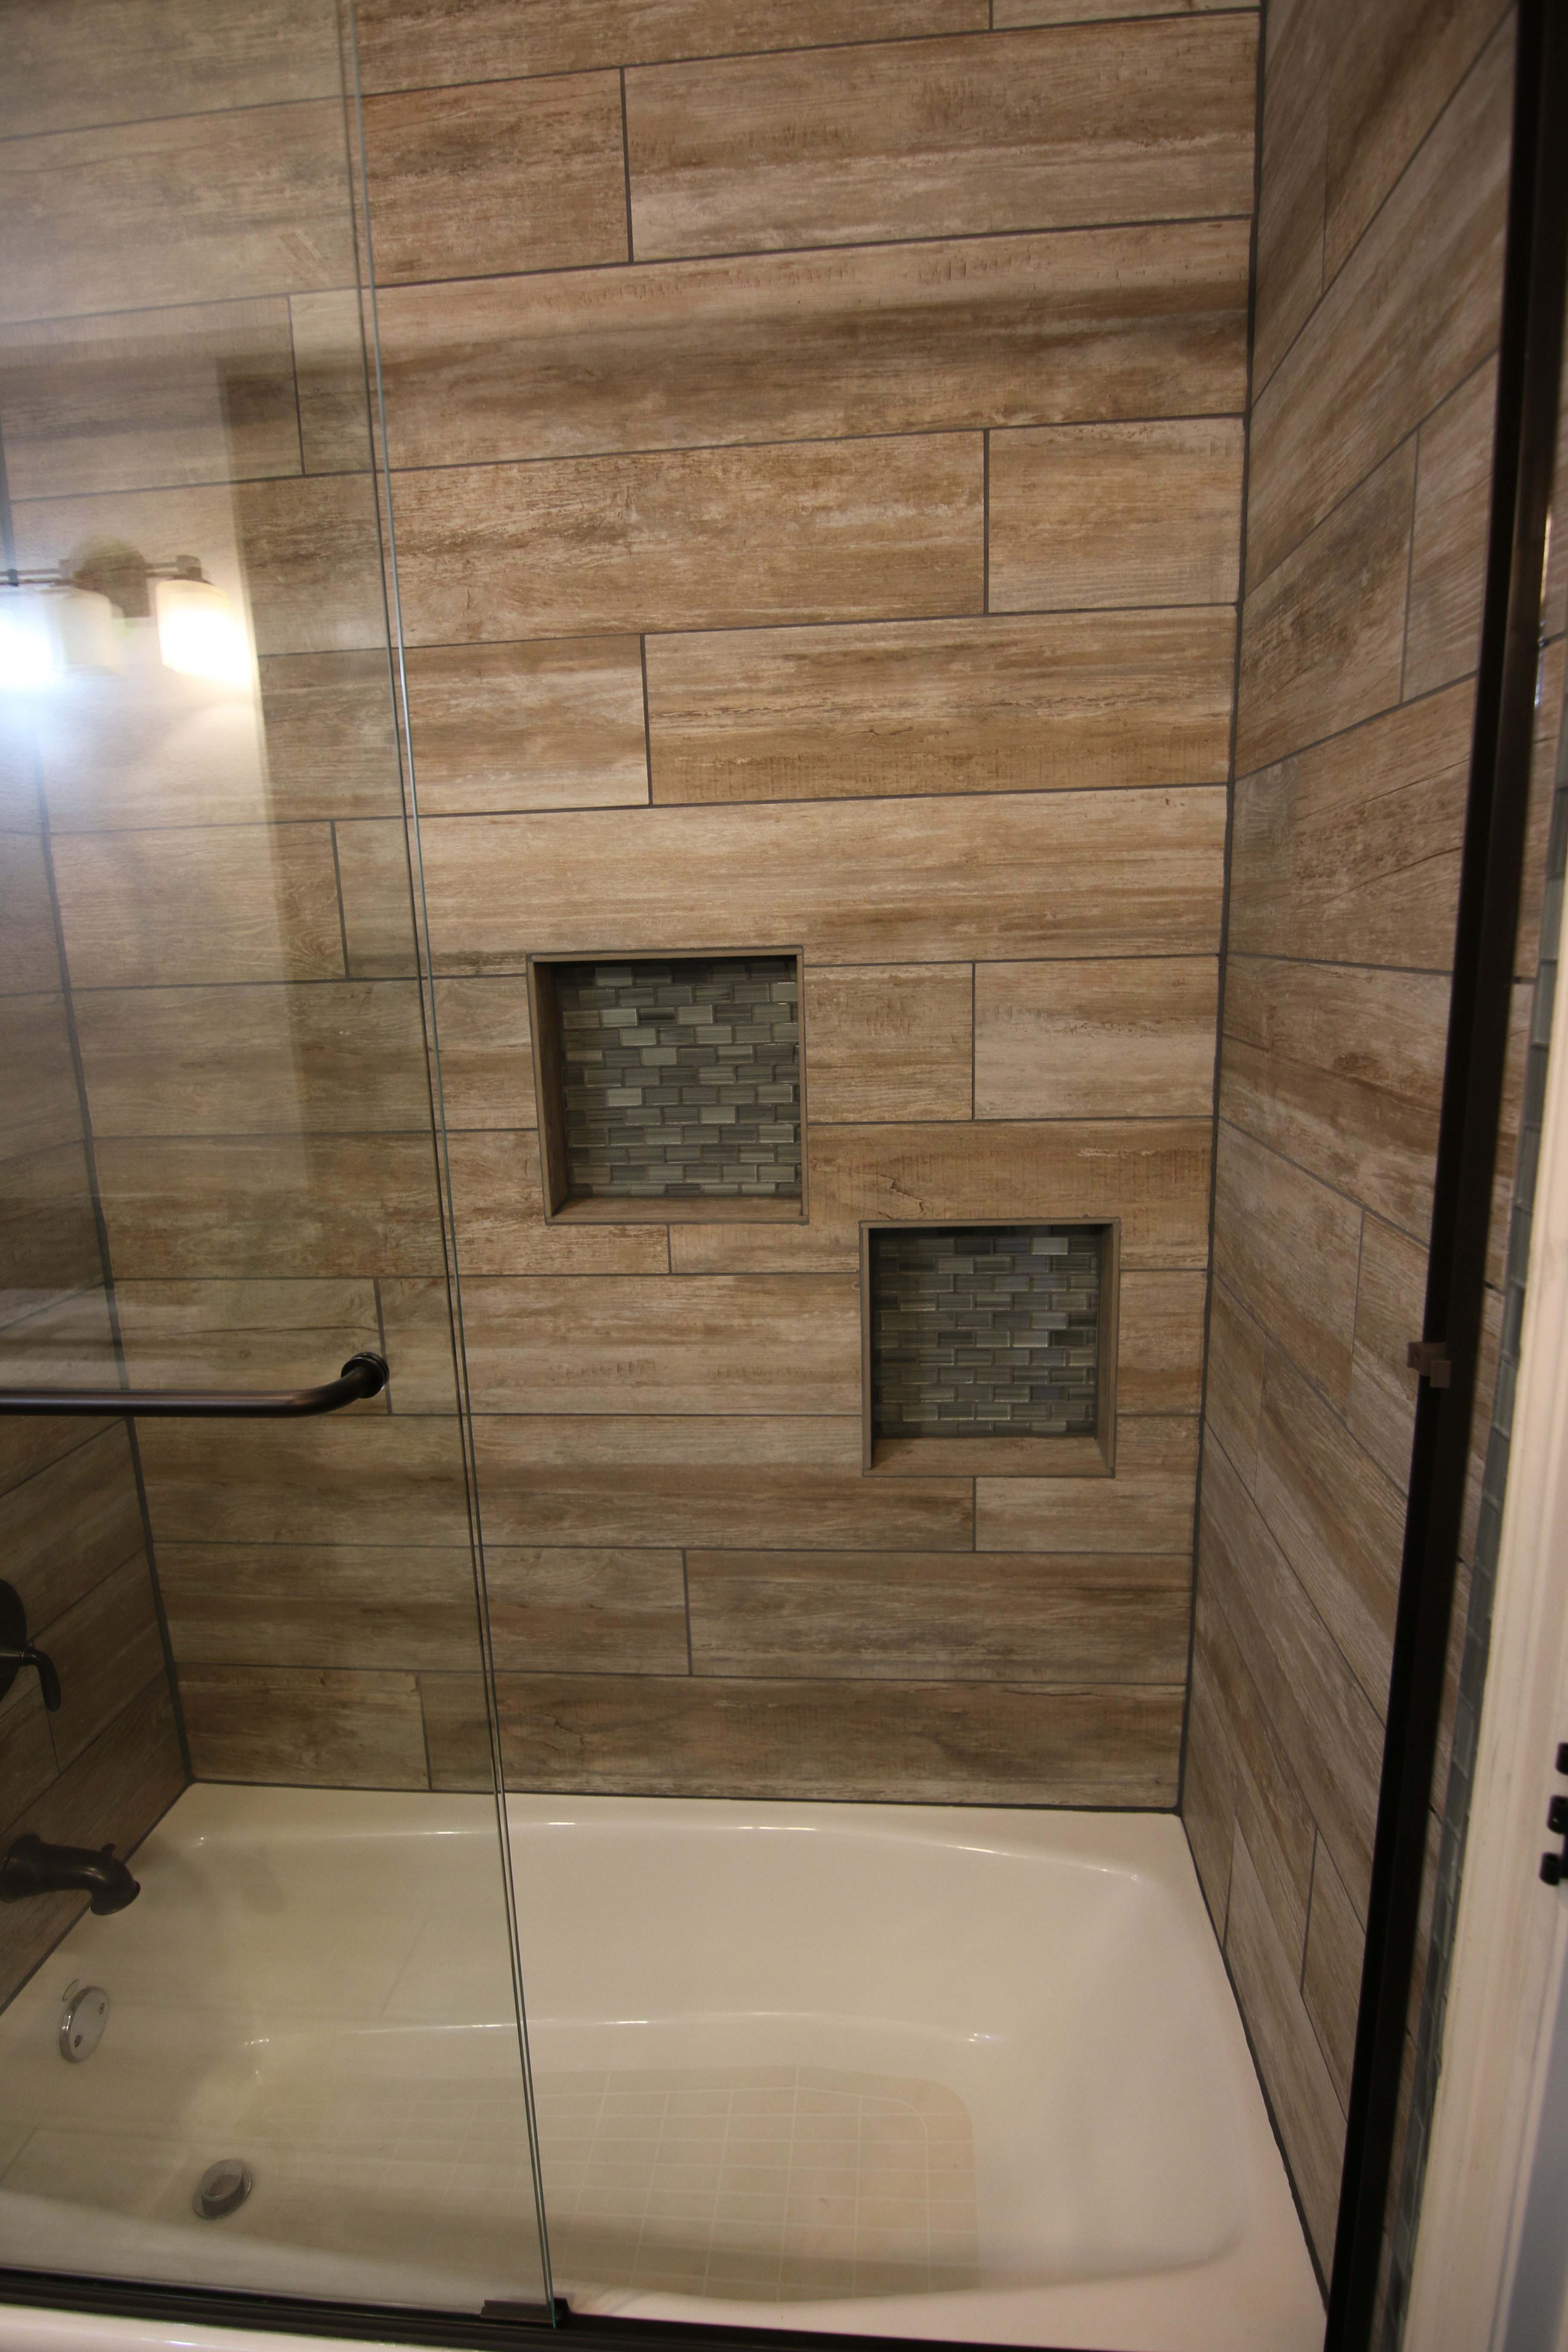 Bathroom Remodeling Austin Texas home page lower right Bathroom Remodeling Austin Texas